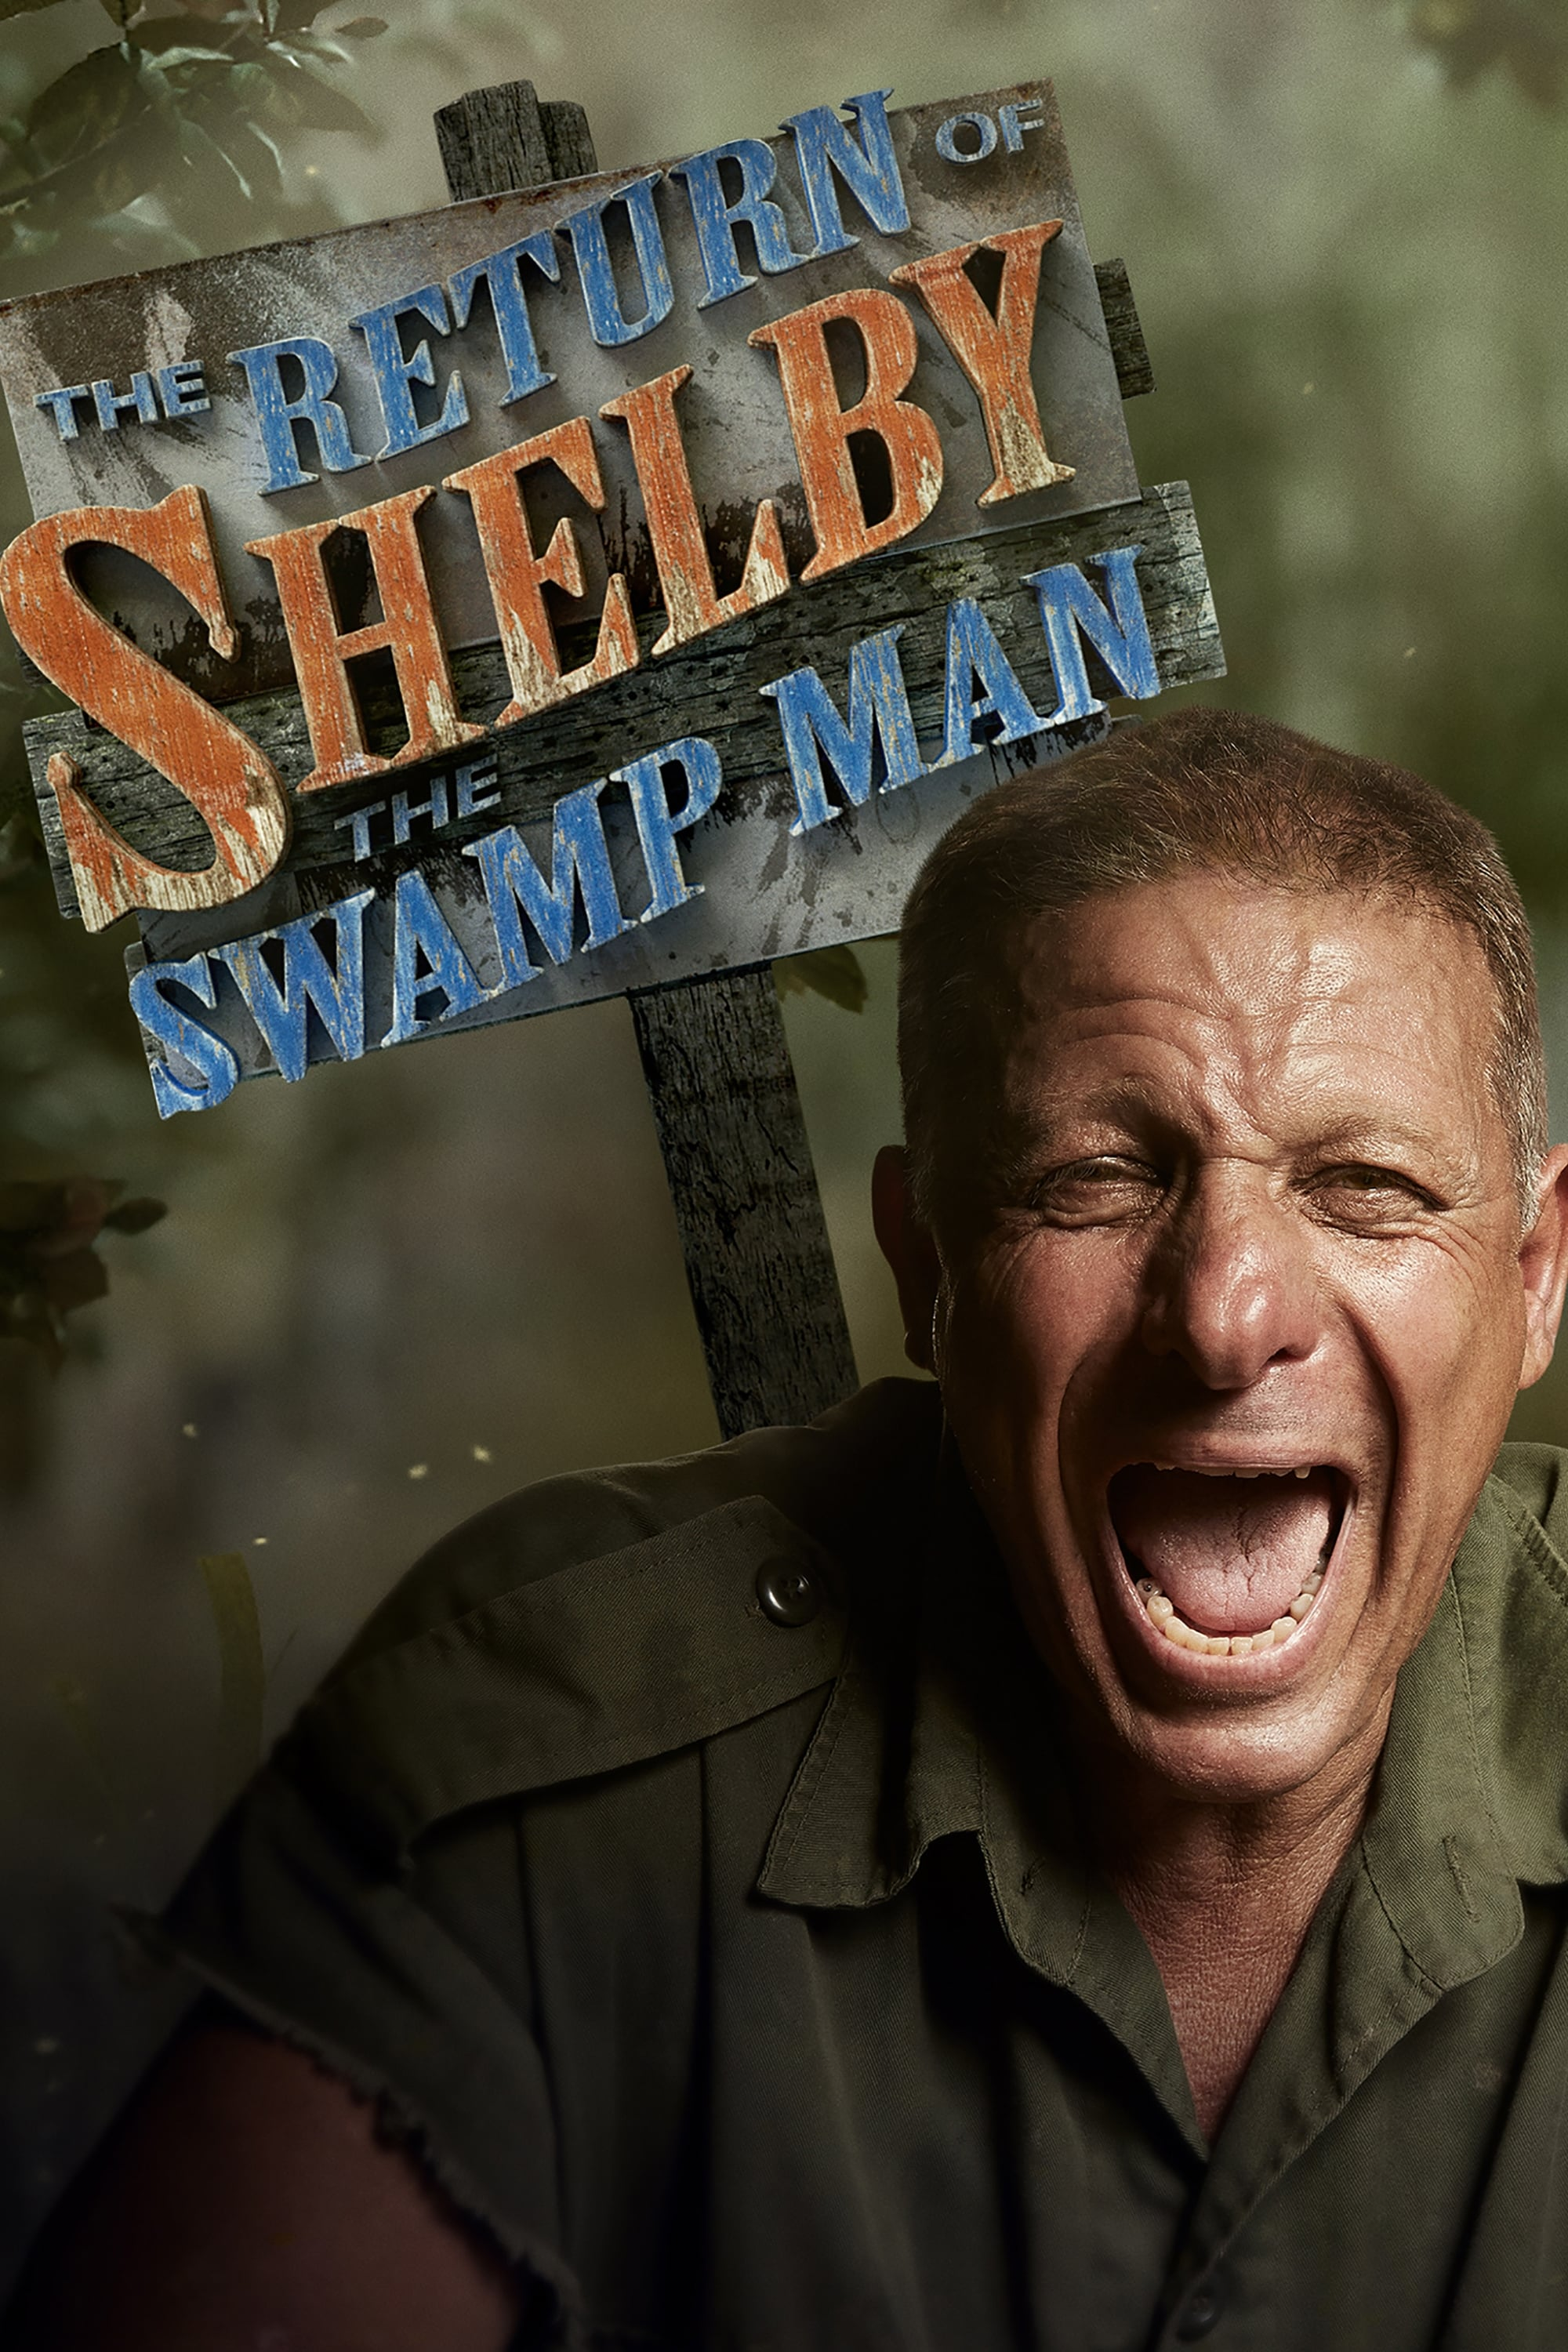 The Return of Shelby the Swamp Man (2018)